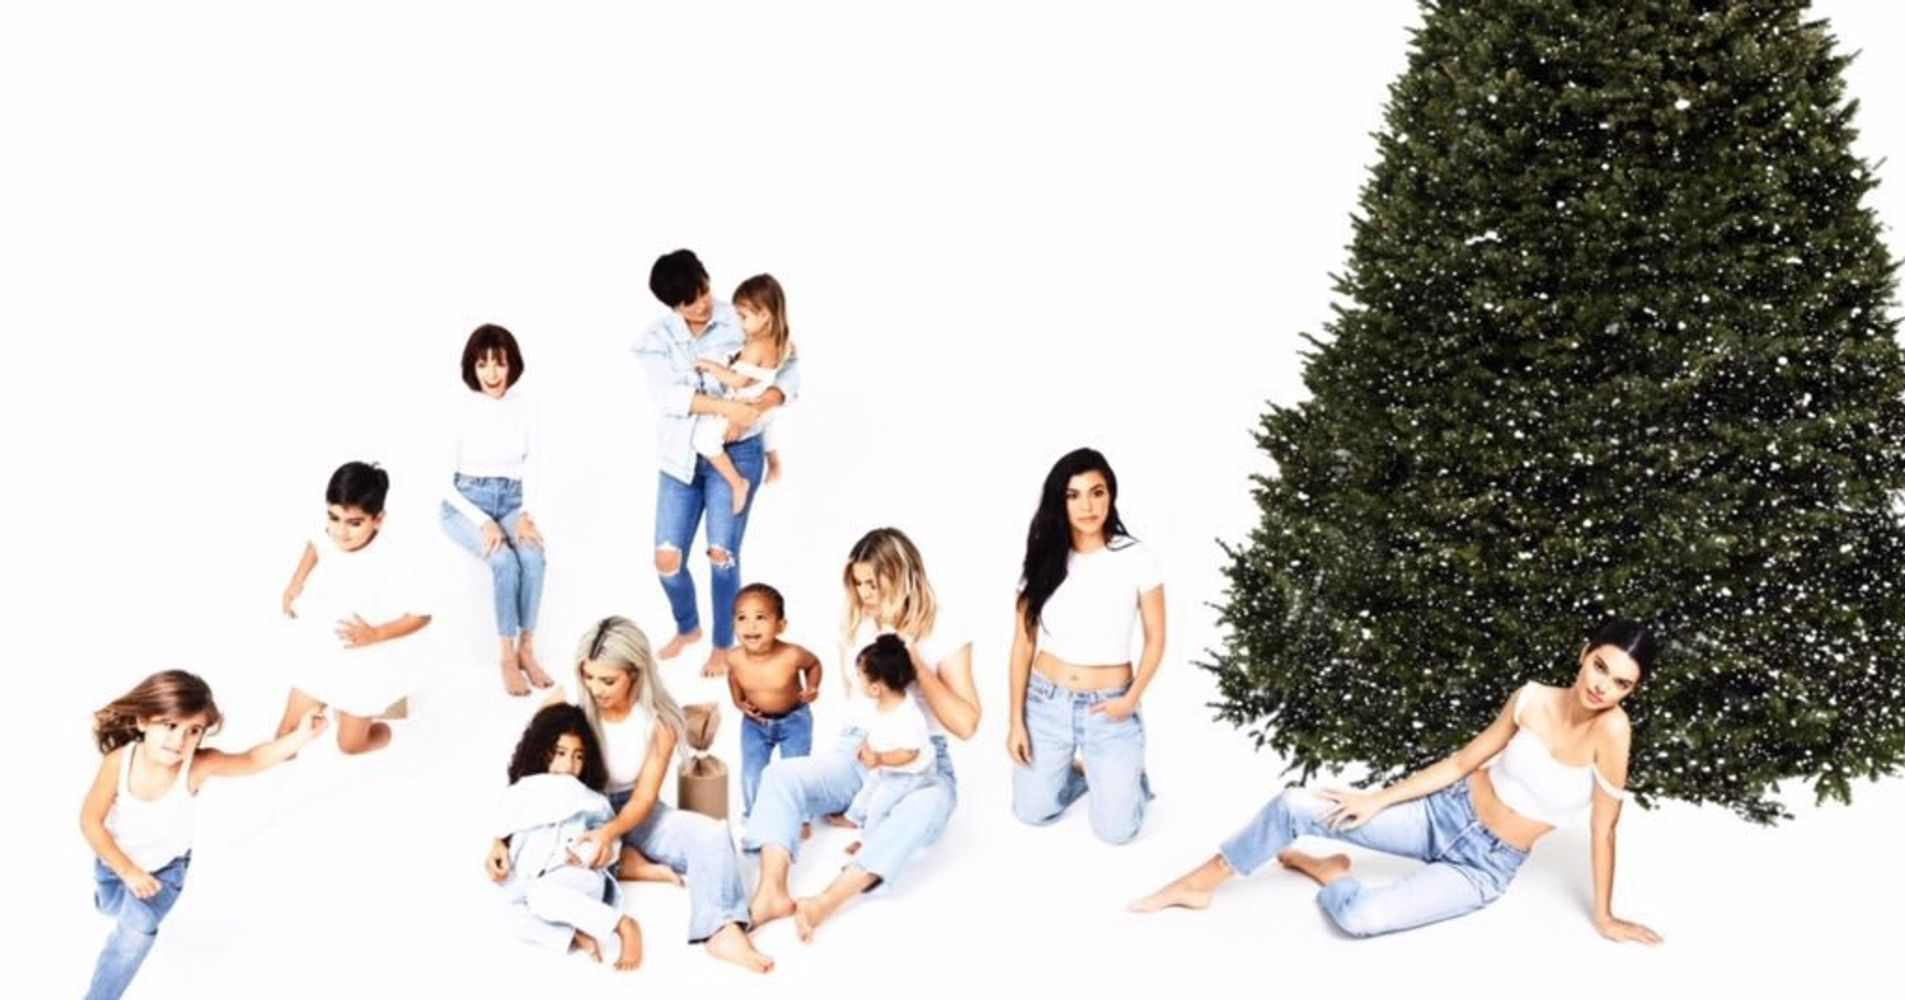 Kylie Jenner Absent From Kardashian Family Christmas Card | HuffPost